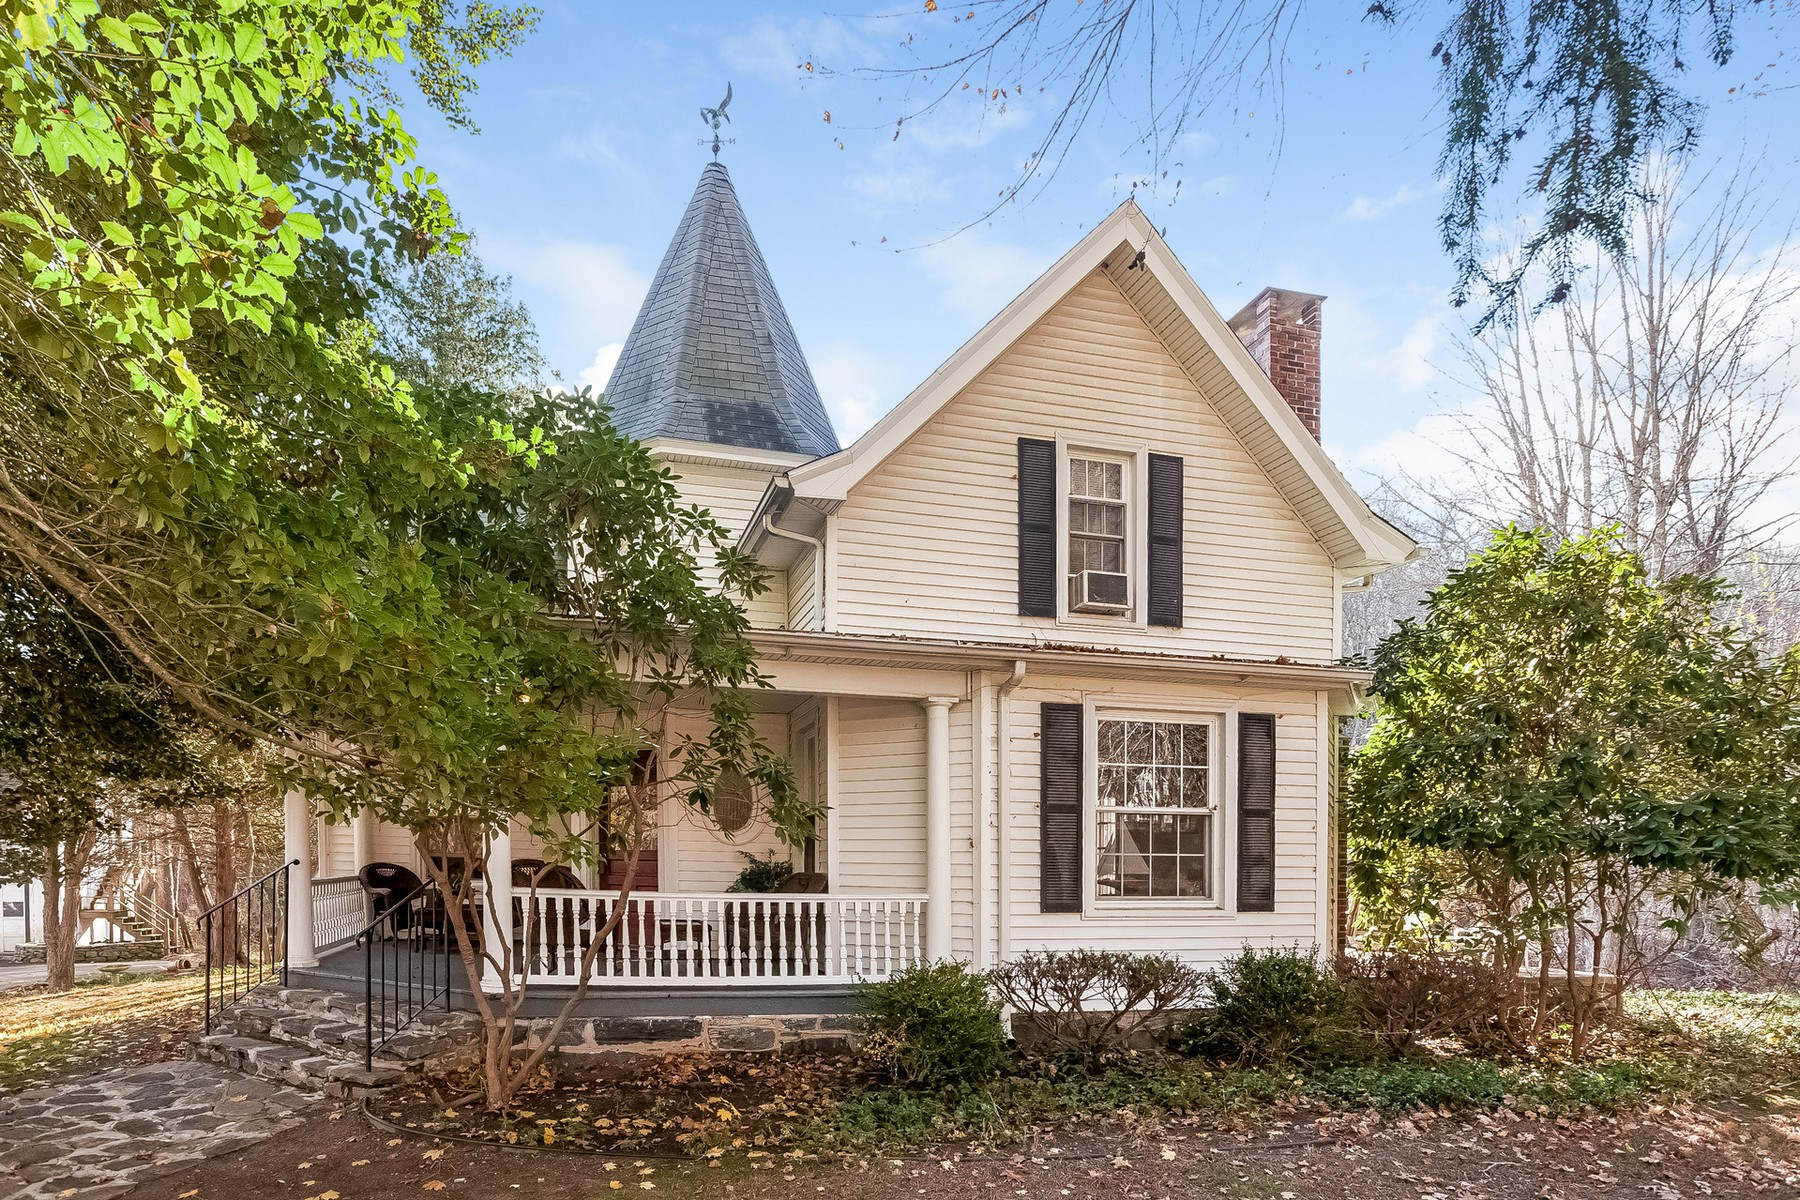 Single Family Home for Sale at Circa 1890 Colonial on 4+ Acres 176 Essex Deep River Deep River, Connecticut 06417 United States